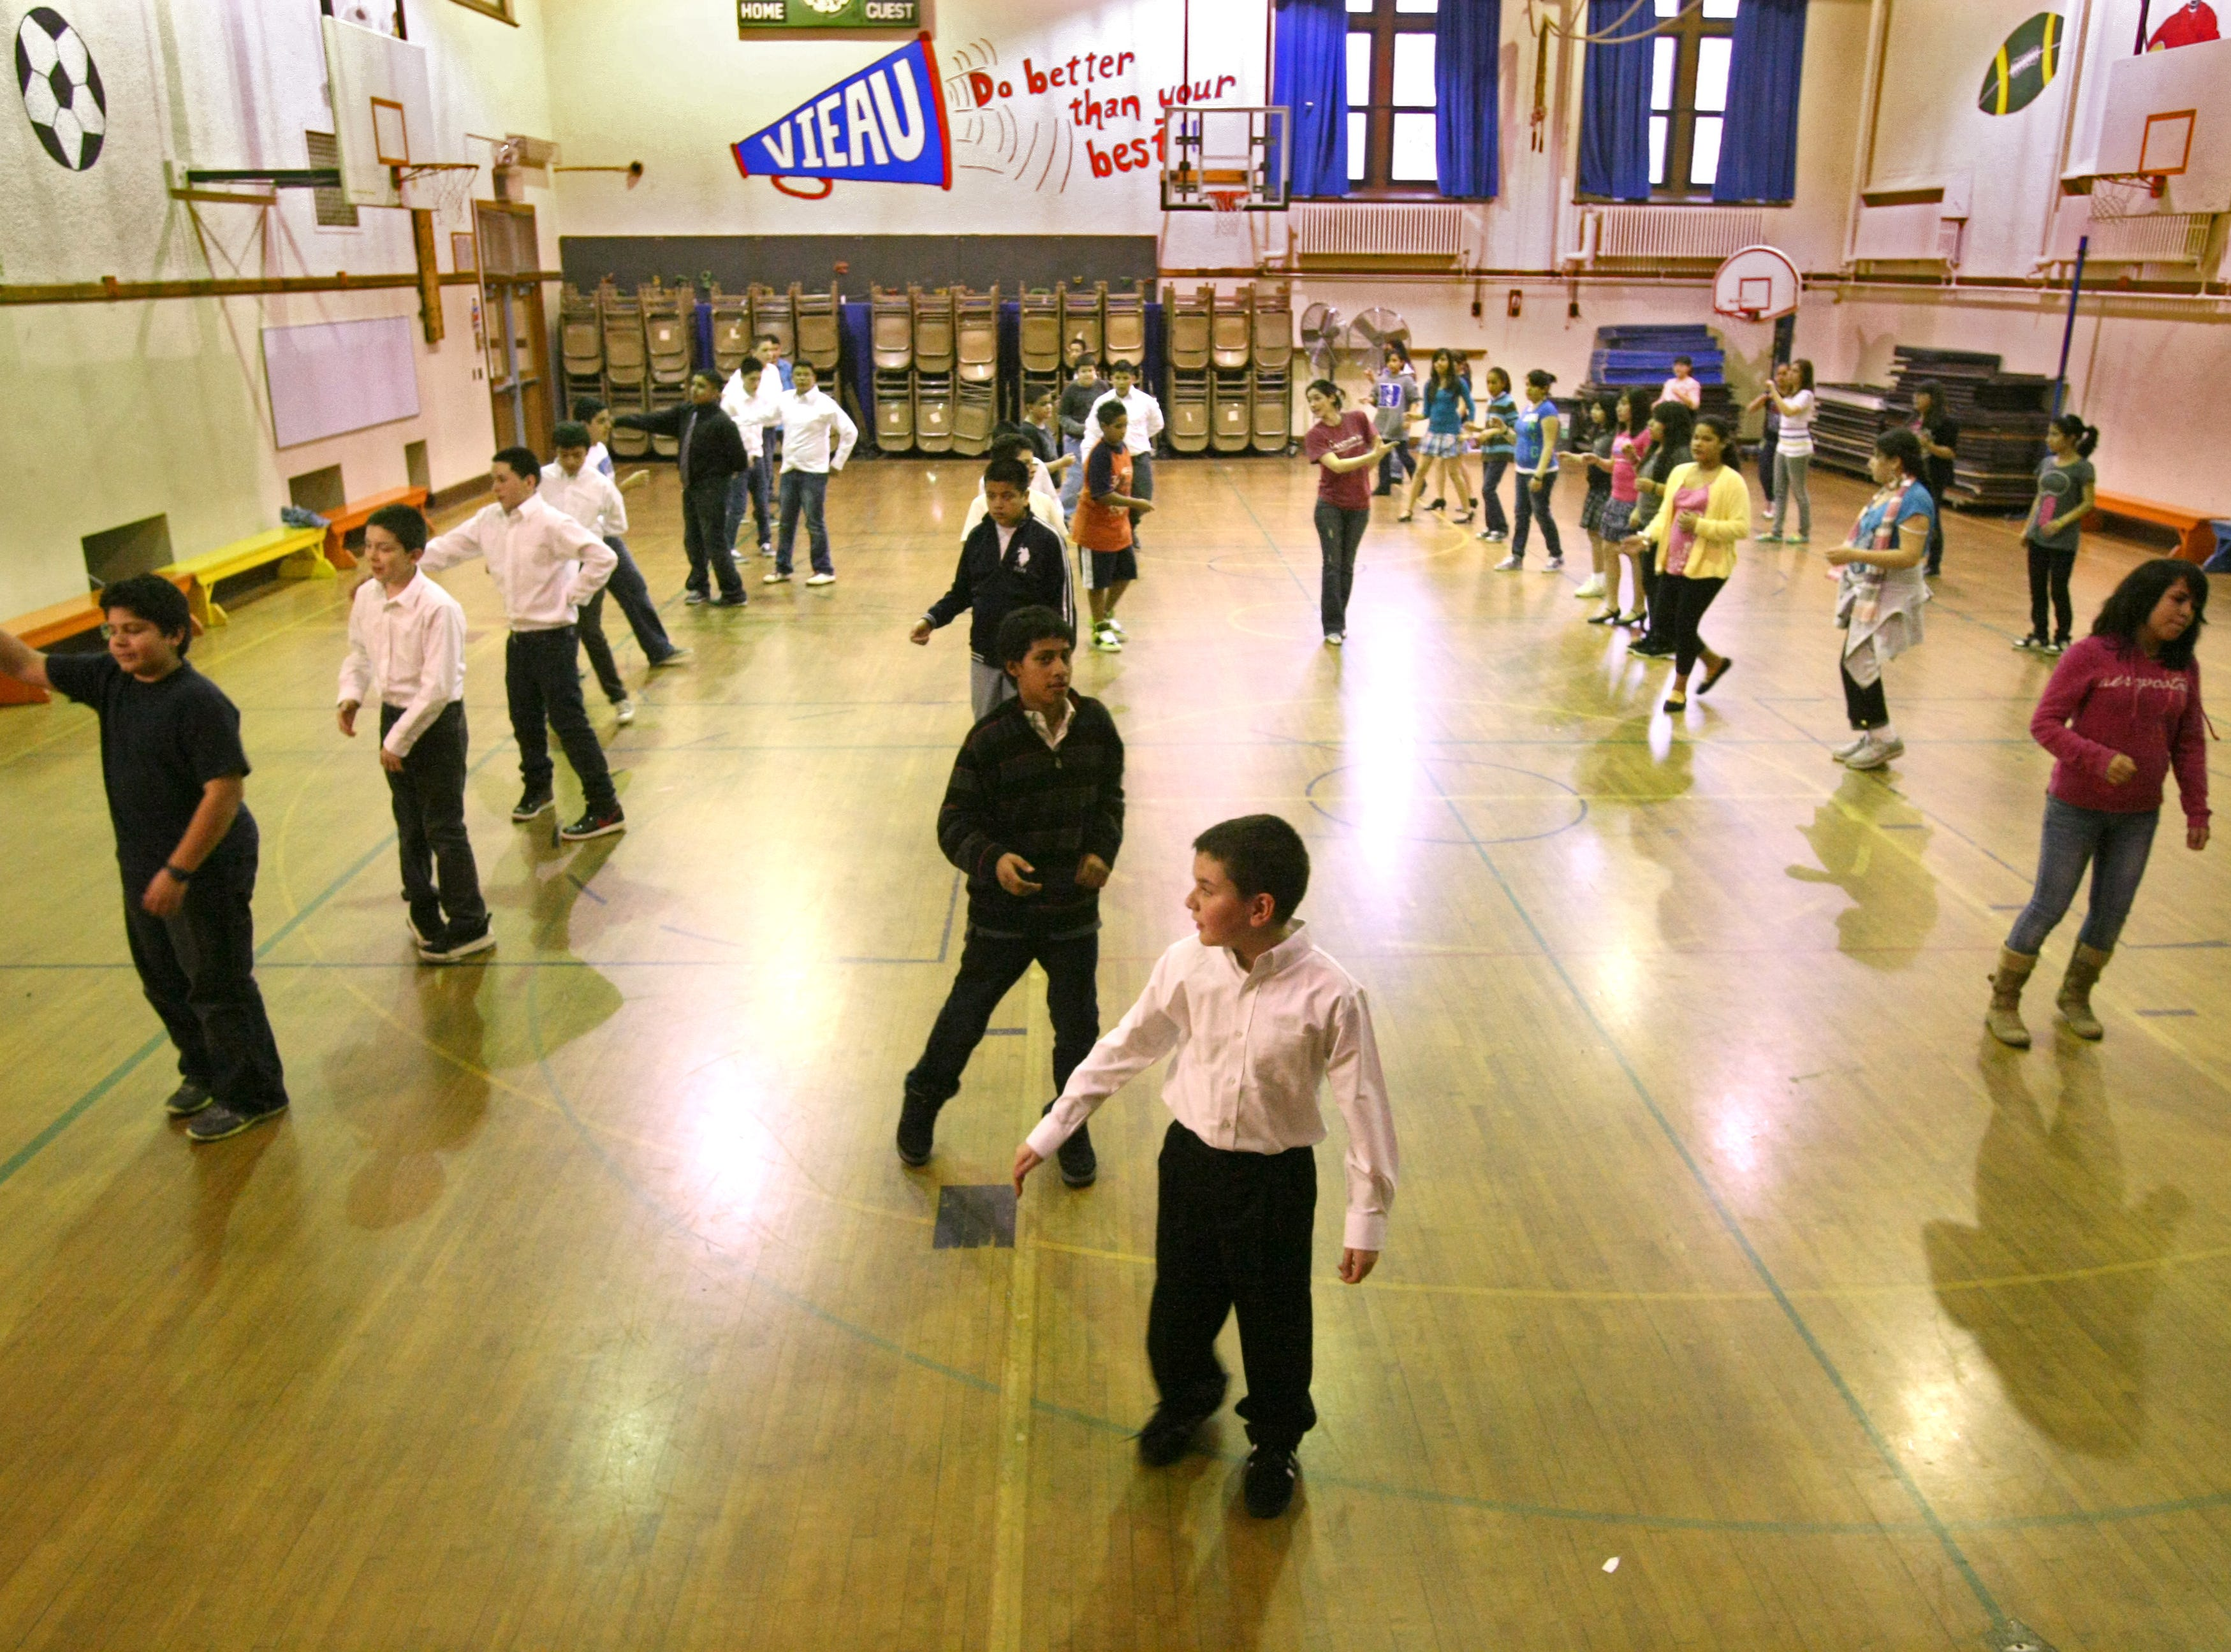 2011: At Milwaukee's Vieau School, 6th grade students practice ballroom dancing in preparation for the Mad Hot Ballroom at the Bradley Center.